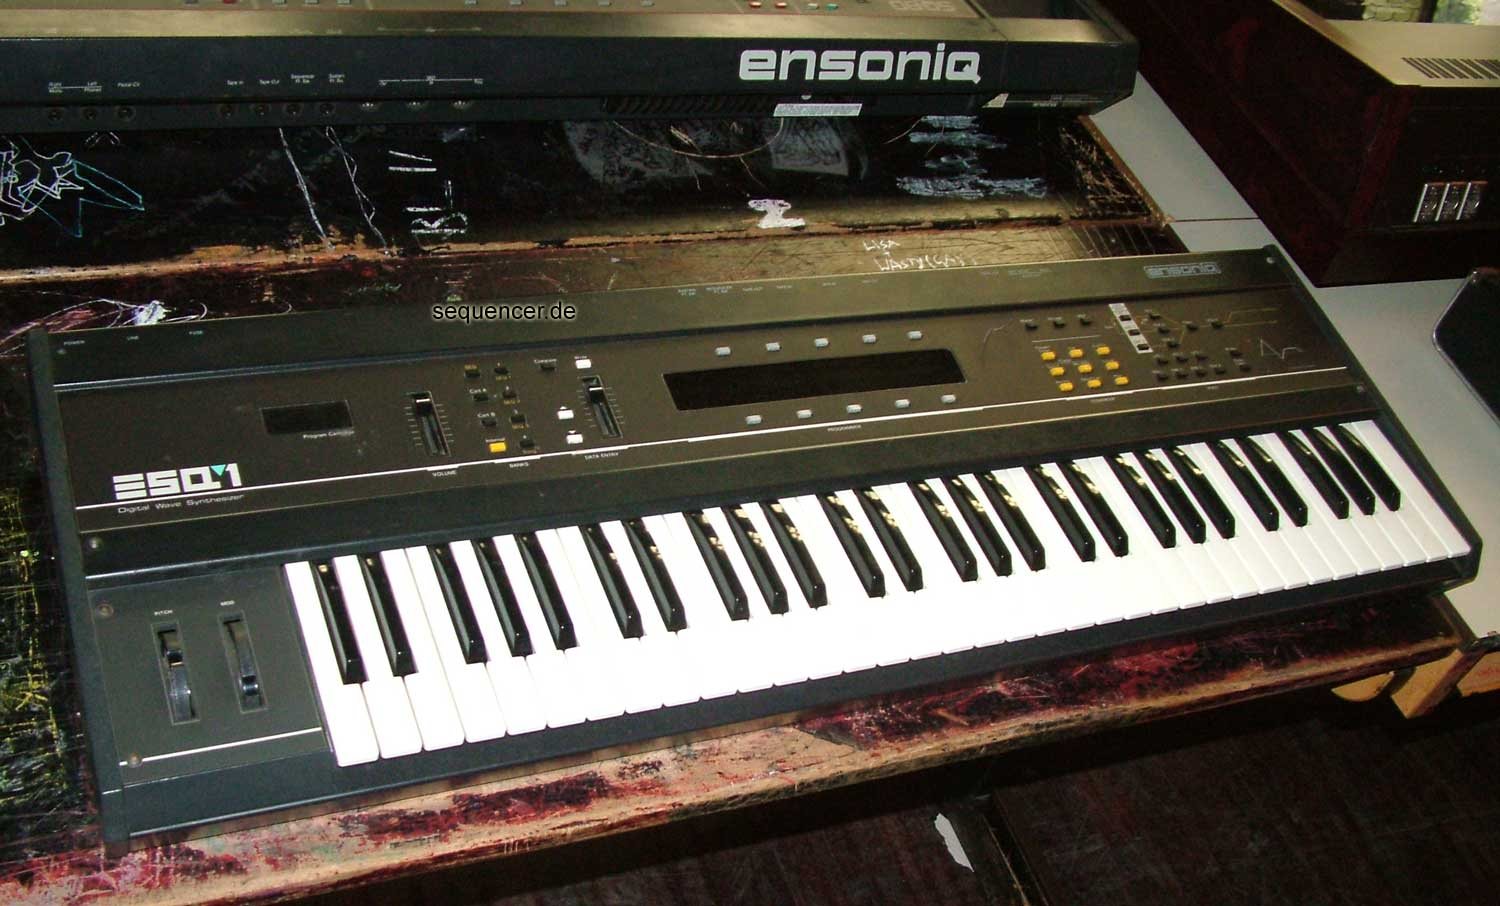 Ensoniq ESQ1, ESQm synthesizer